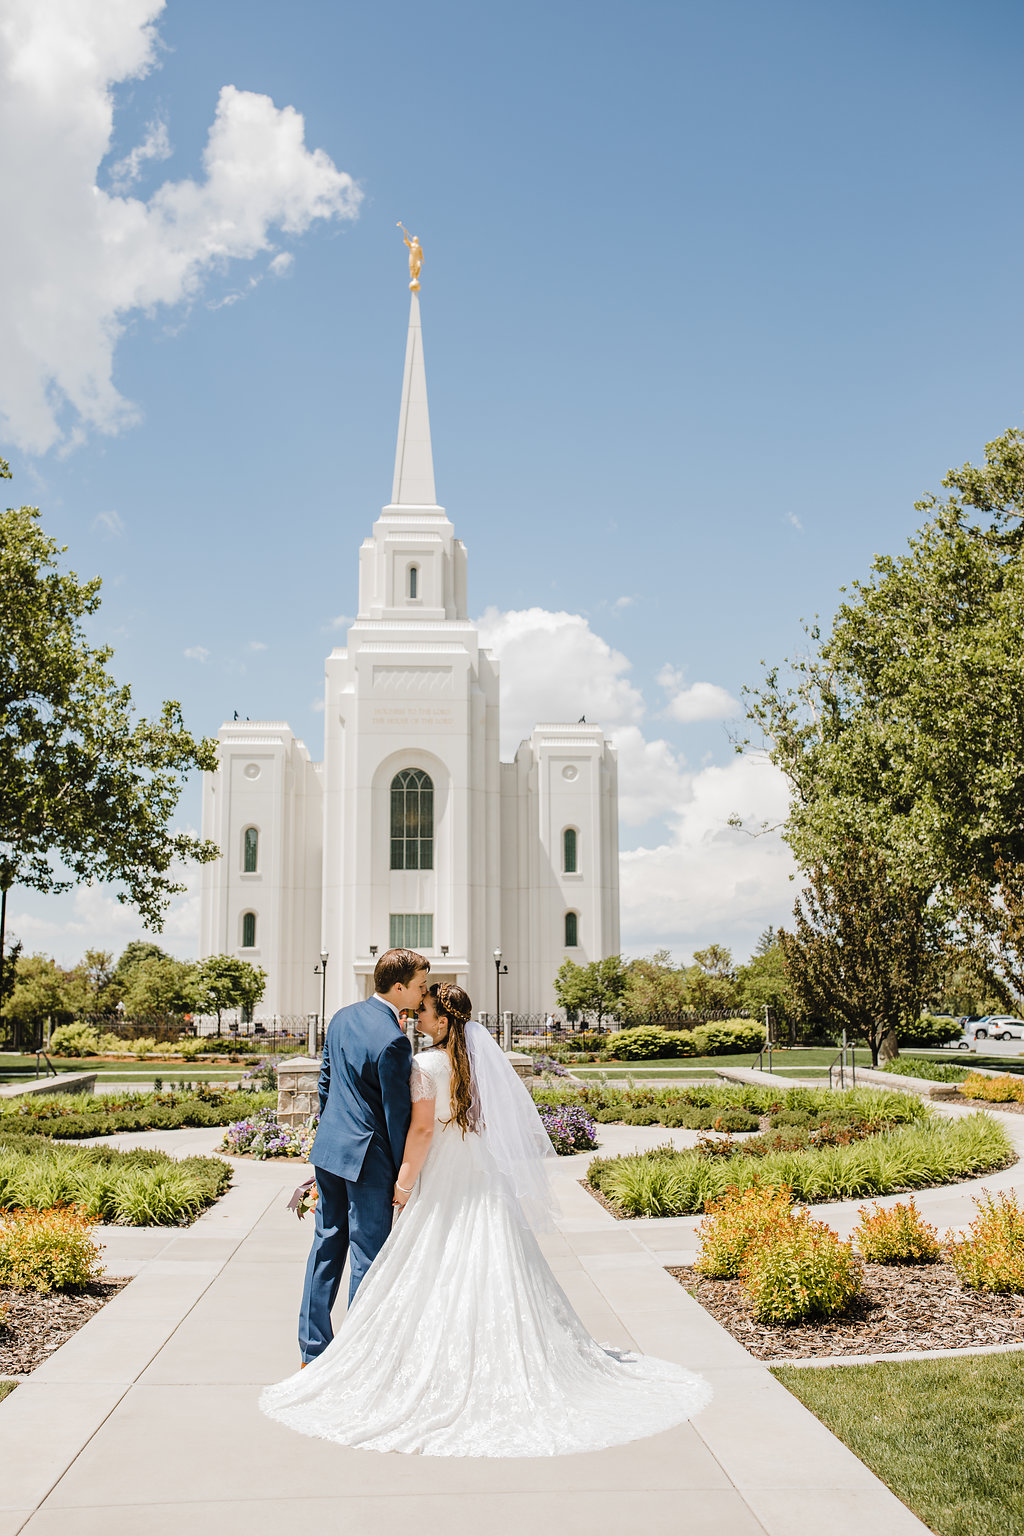 lds temple brigham city utah summer wedding professional wedding photographer in brigham city calli richards